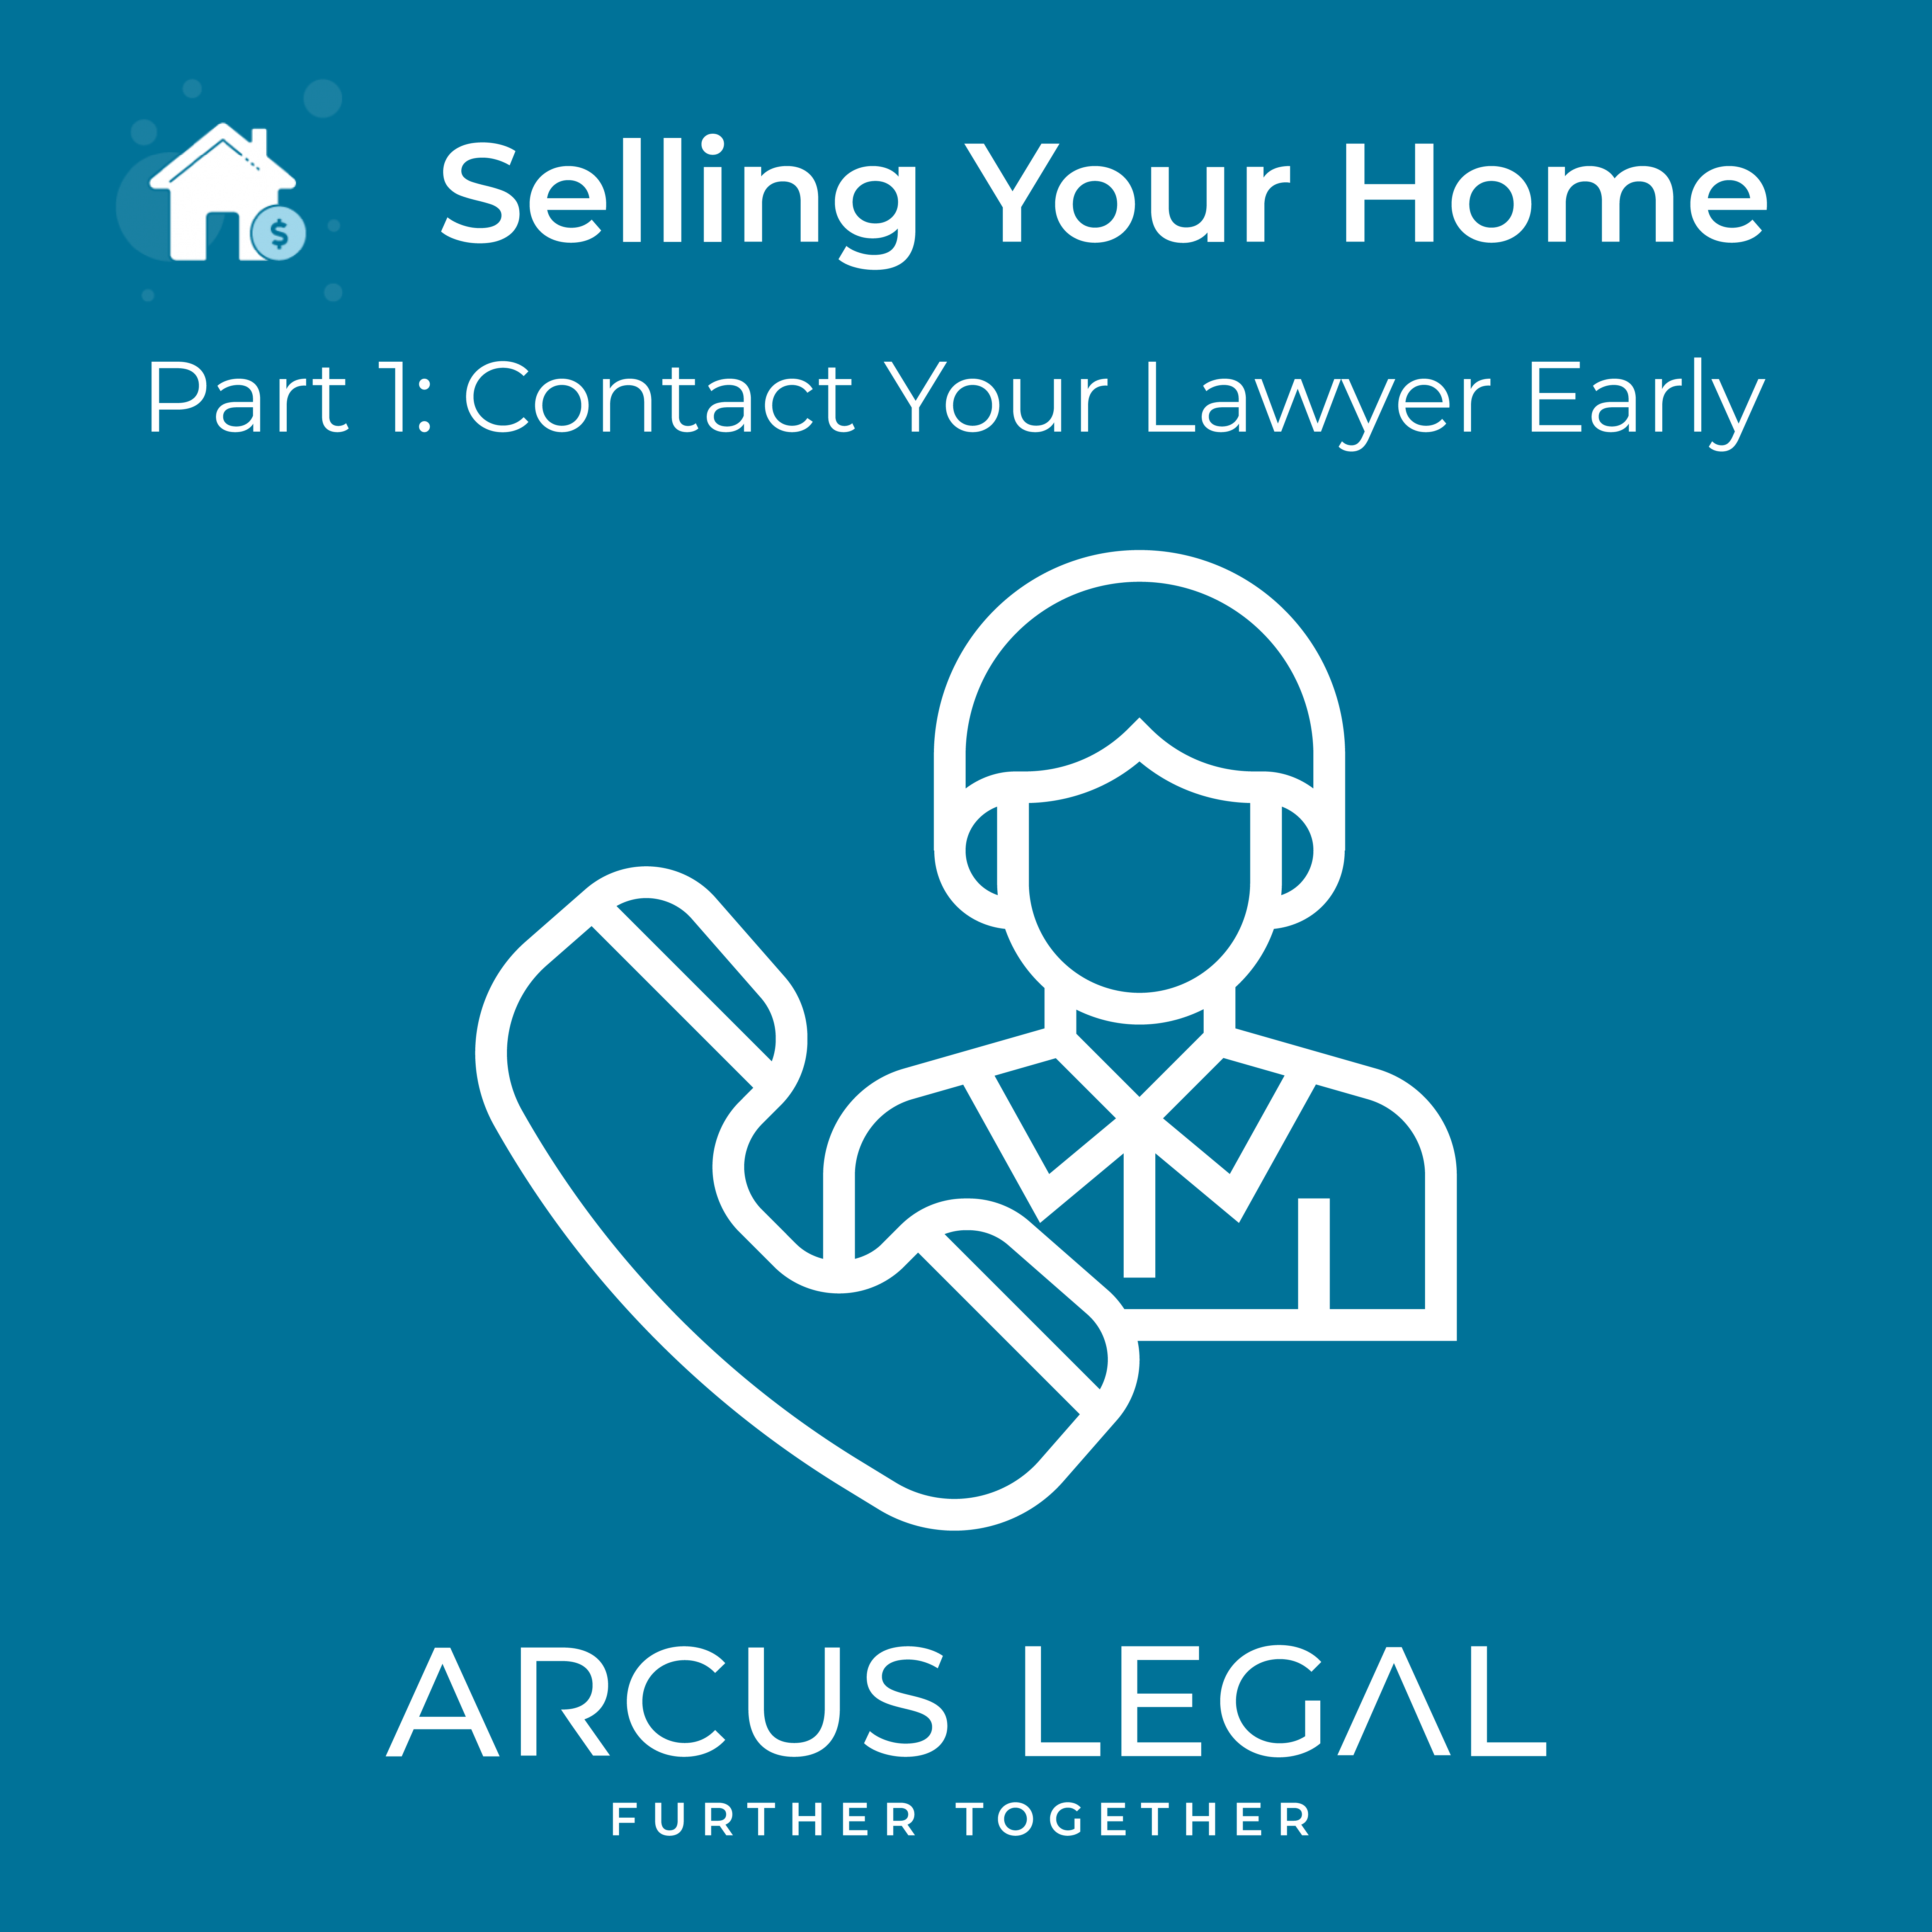 Selling Your Home - Part 1 - Contact your Lawyer Early